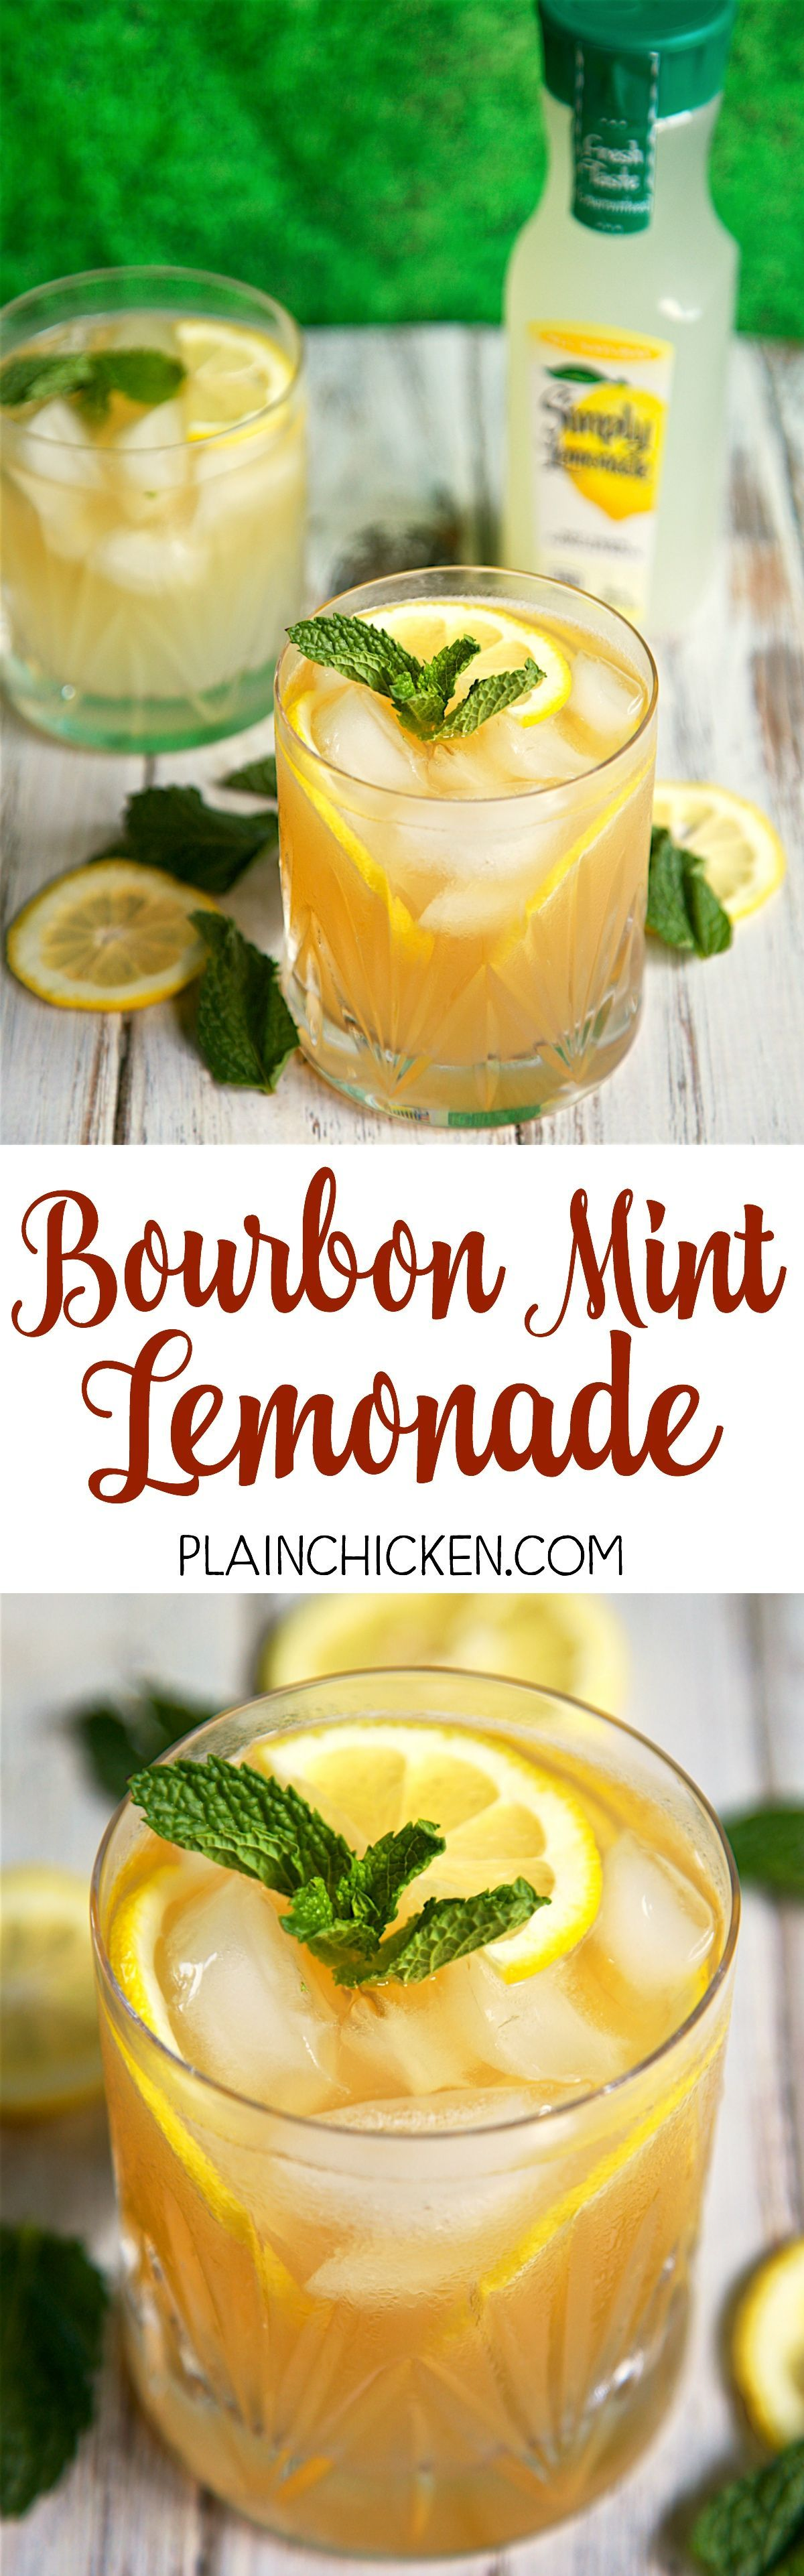 Mint Lemonade - our Signature Summer Cocktail! Only 3 ingredients - bourbon, mint and Simply Lemonade. So light and refreshing! Mix up a pitcher for your next summer BBQ!